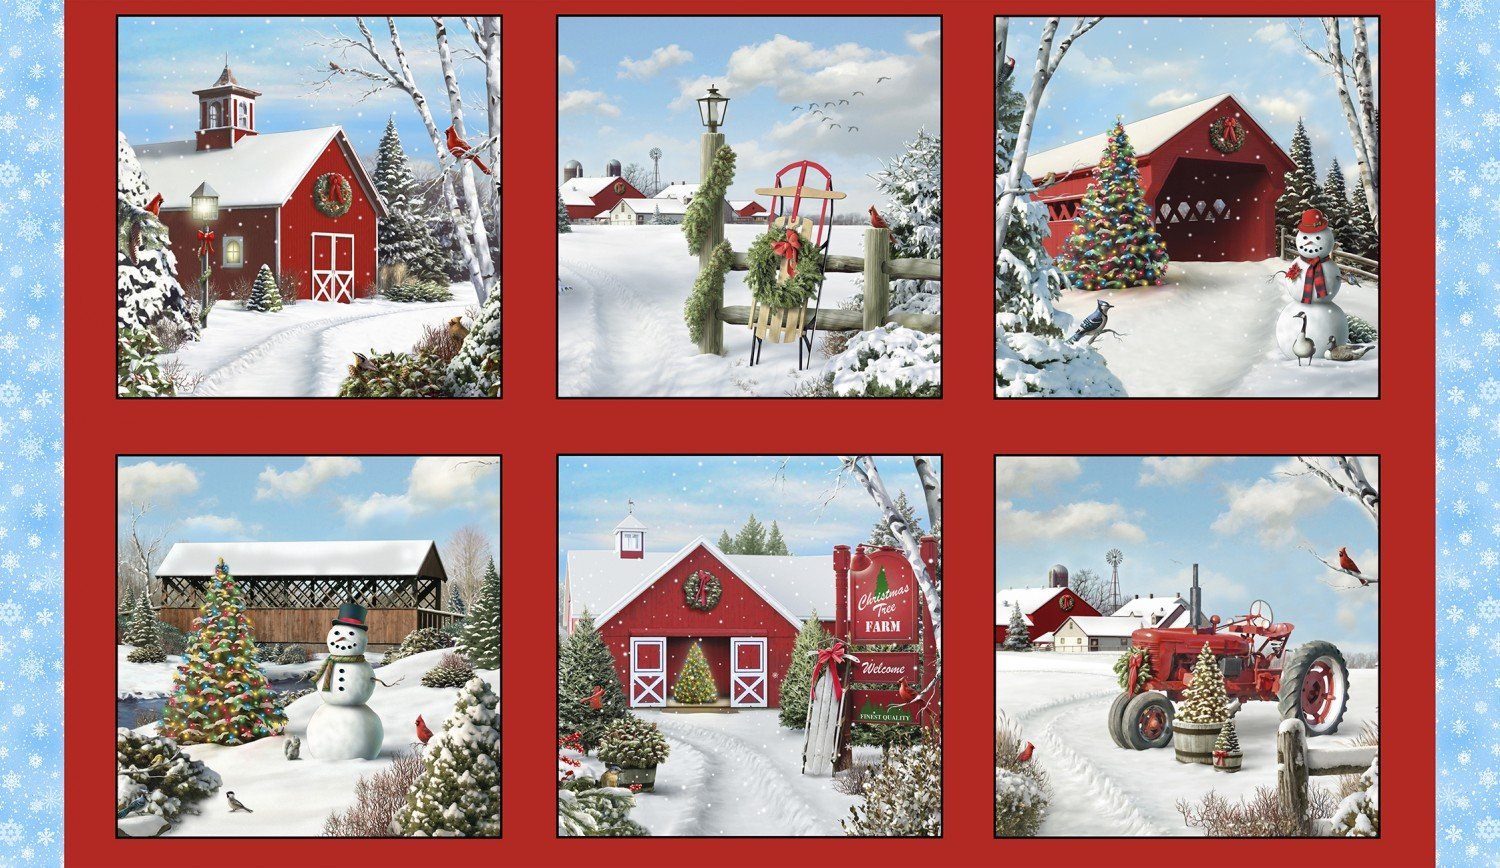 Tis' The Season 13002 Red Panel 24 x 44